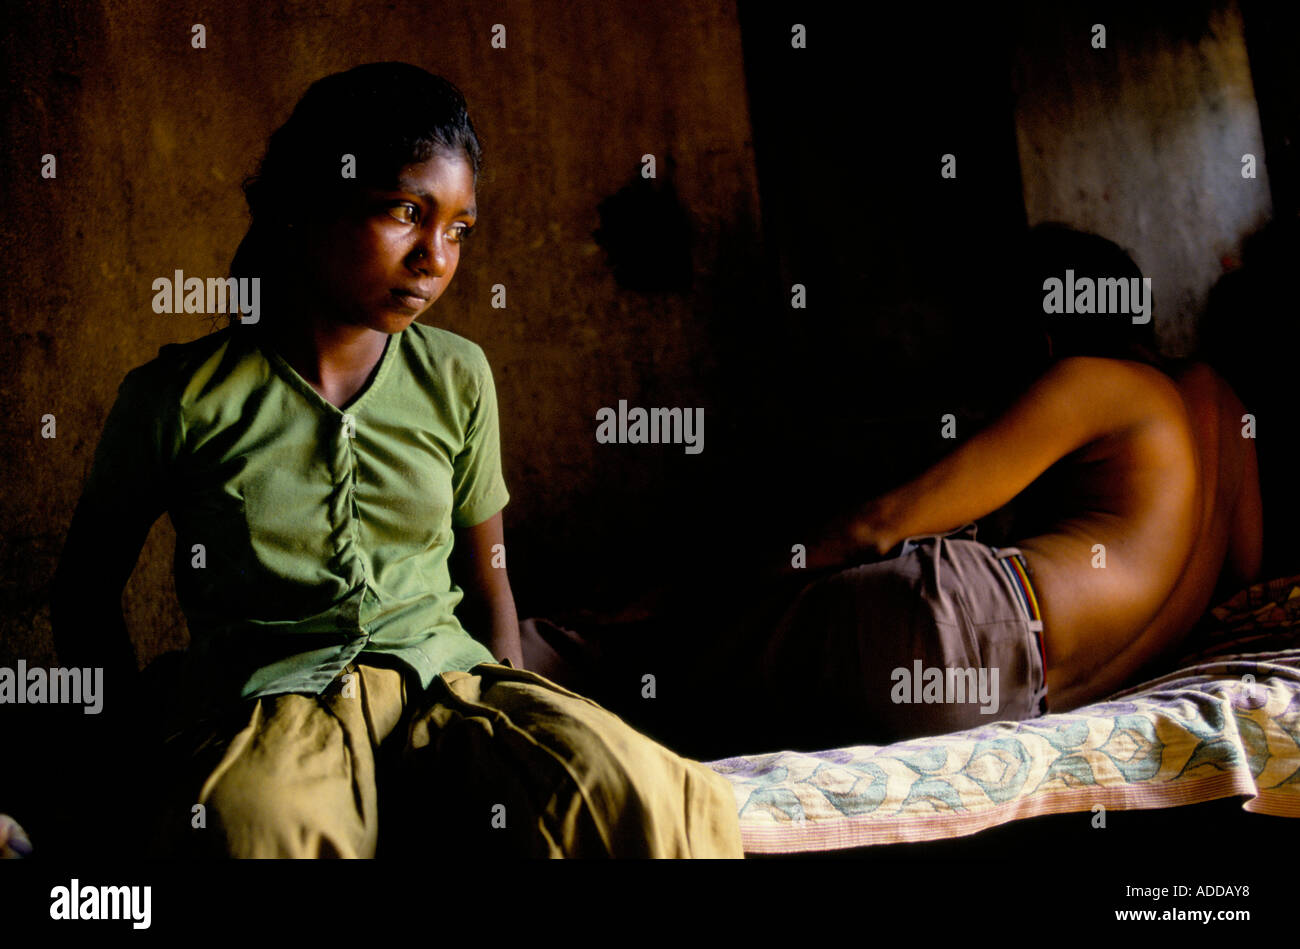 Rani 14, child prostitute, with a client